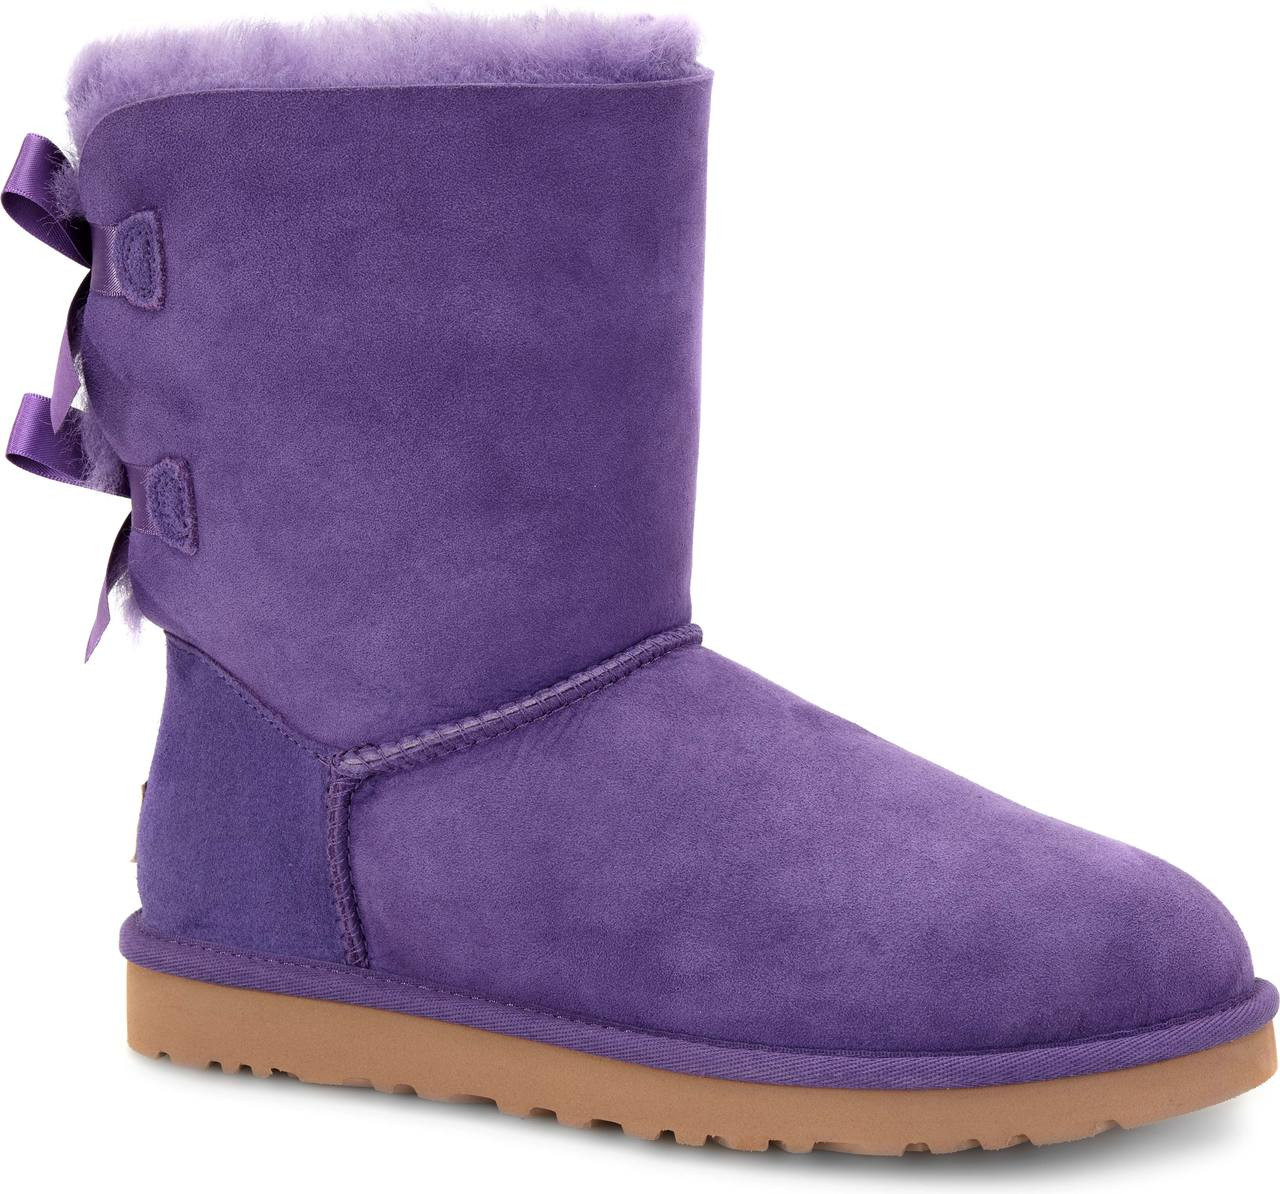 Buy Ugg Australia Girls-Big Kids K Classic Winter Boots: Shop top fashion brands Boots at 2kins4.cf FREE DELIVERY and Returns possible on eligible purchases.